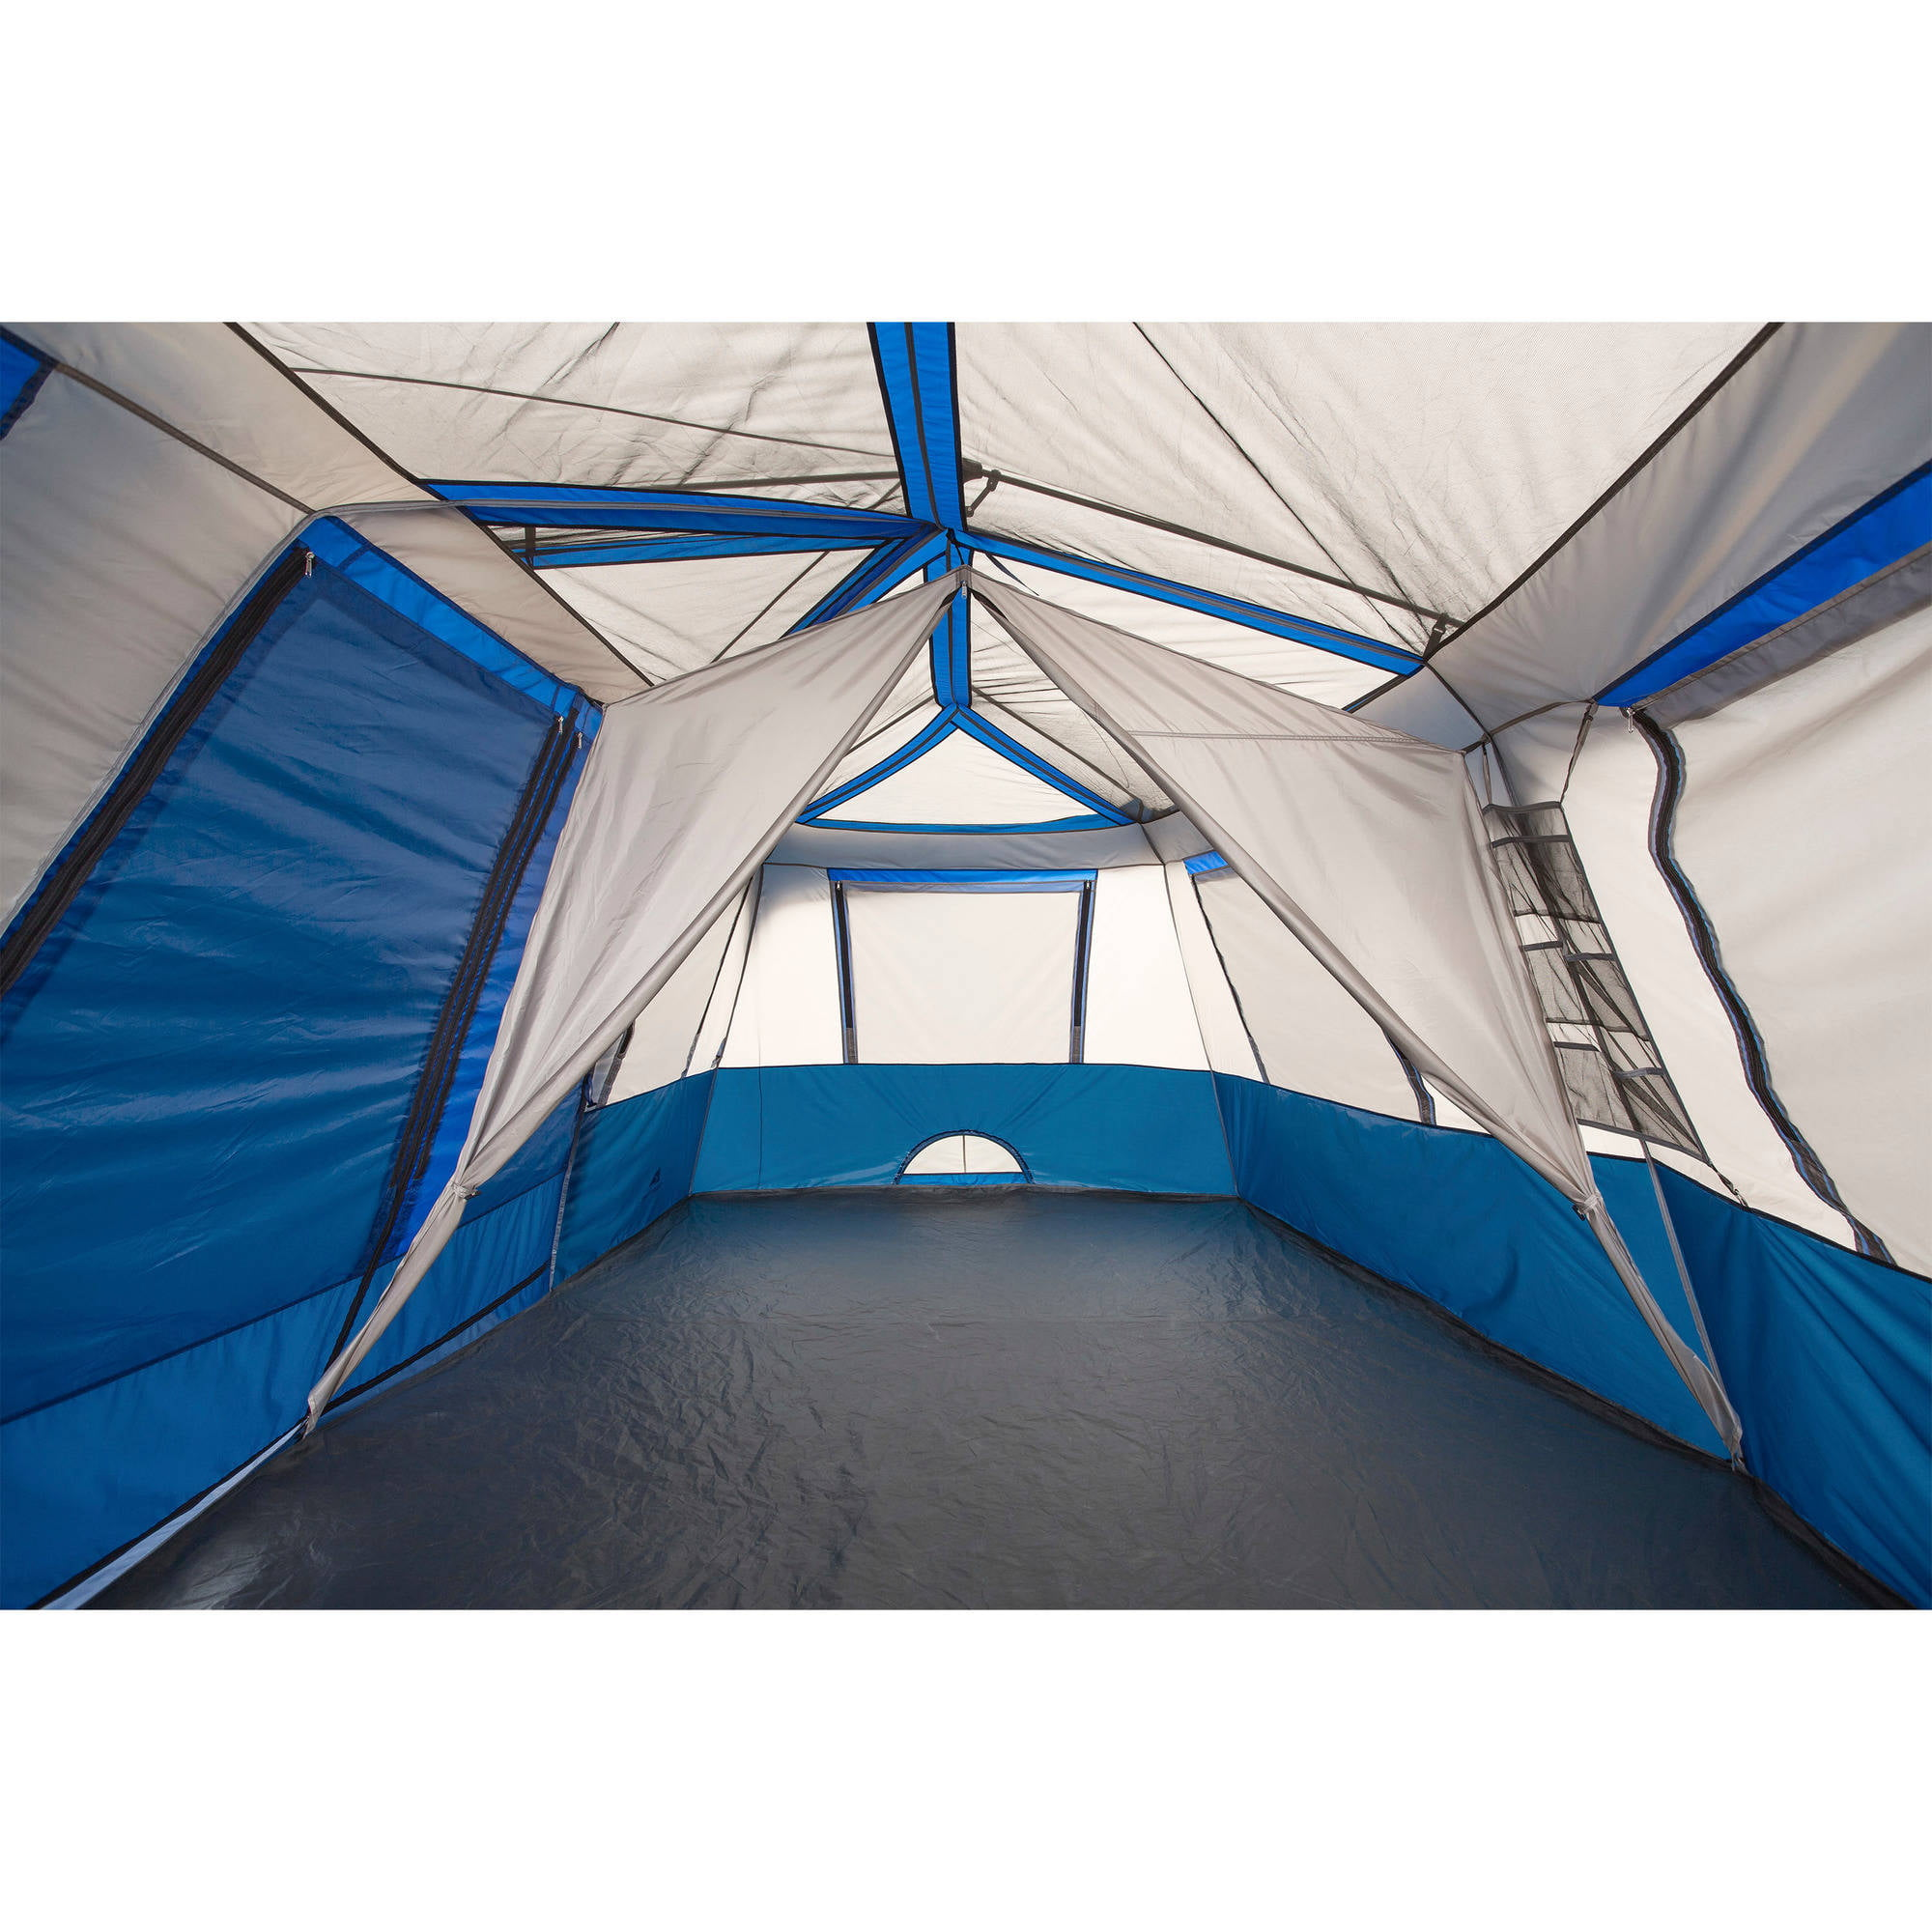 Ozark Trail 12 Person 2 Room Instant Cabin Tent with Screen Room - Walmart.com  sc 1 st  Walmart : ozark 8 person instant tent - memphite.com